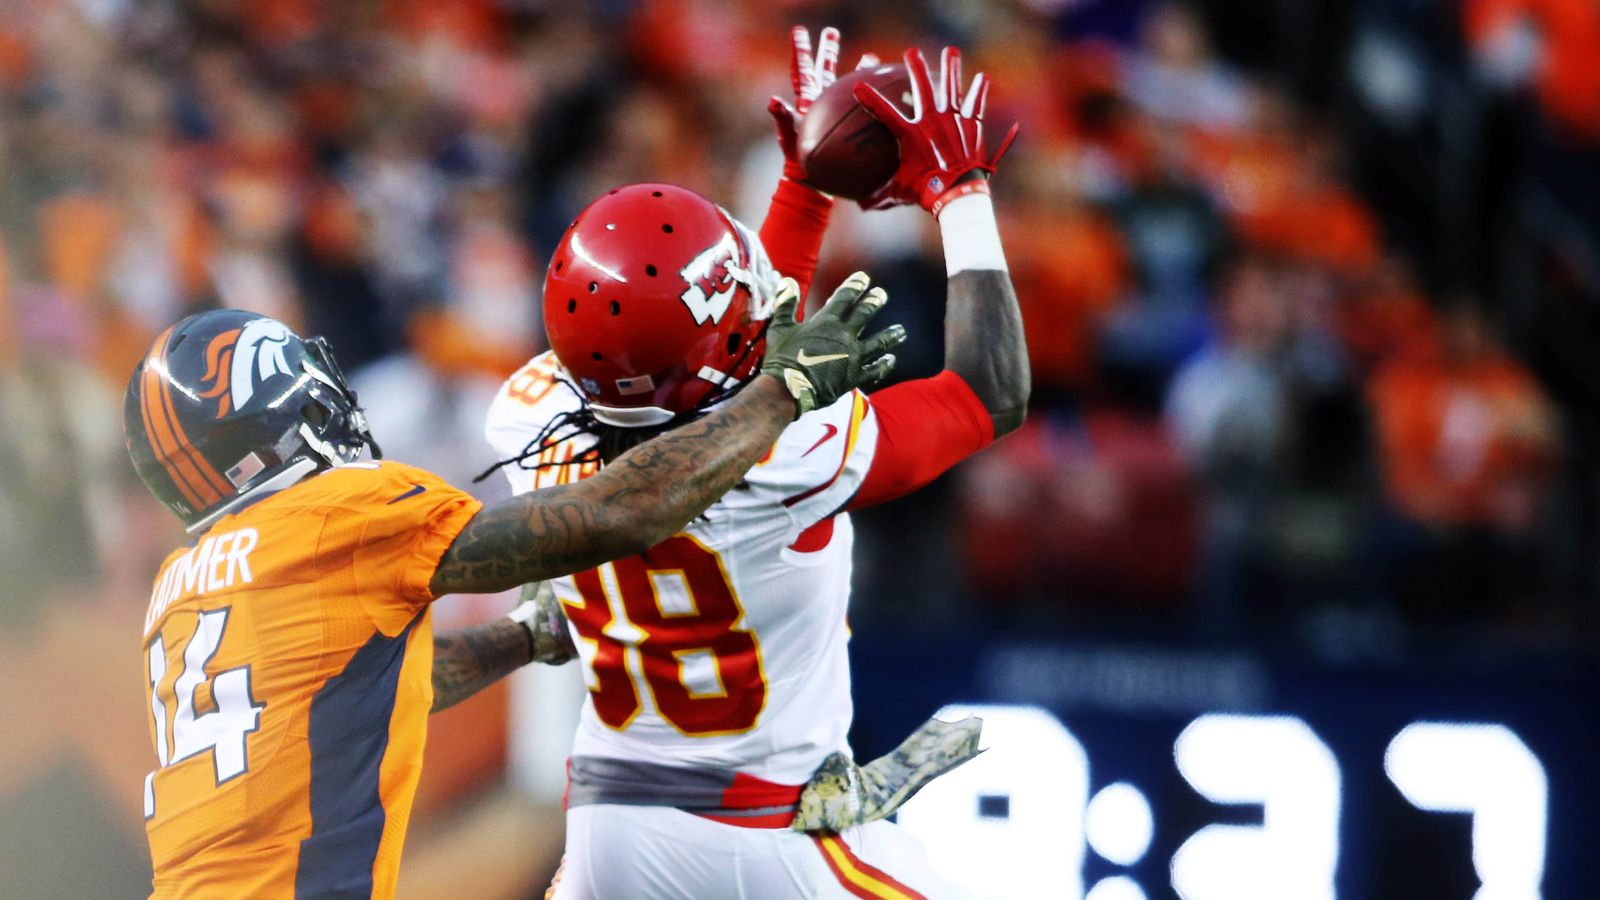 Chiefs vs. Broncos final score and highlights: Kansas City doinks it in for a 30-27 overtime win ...